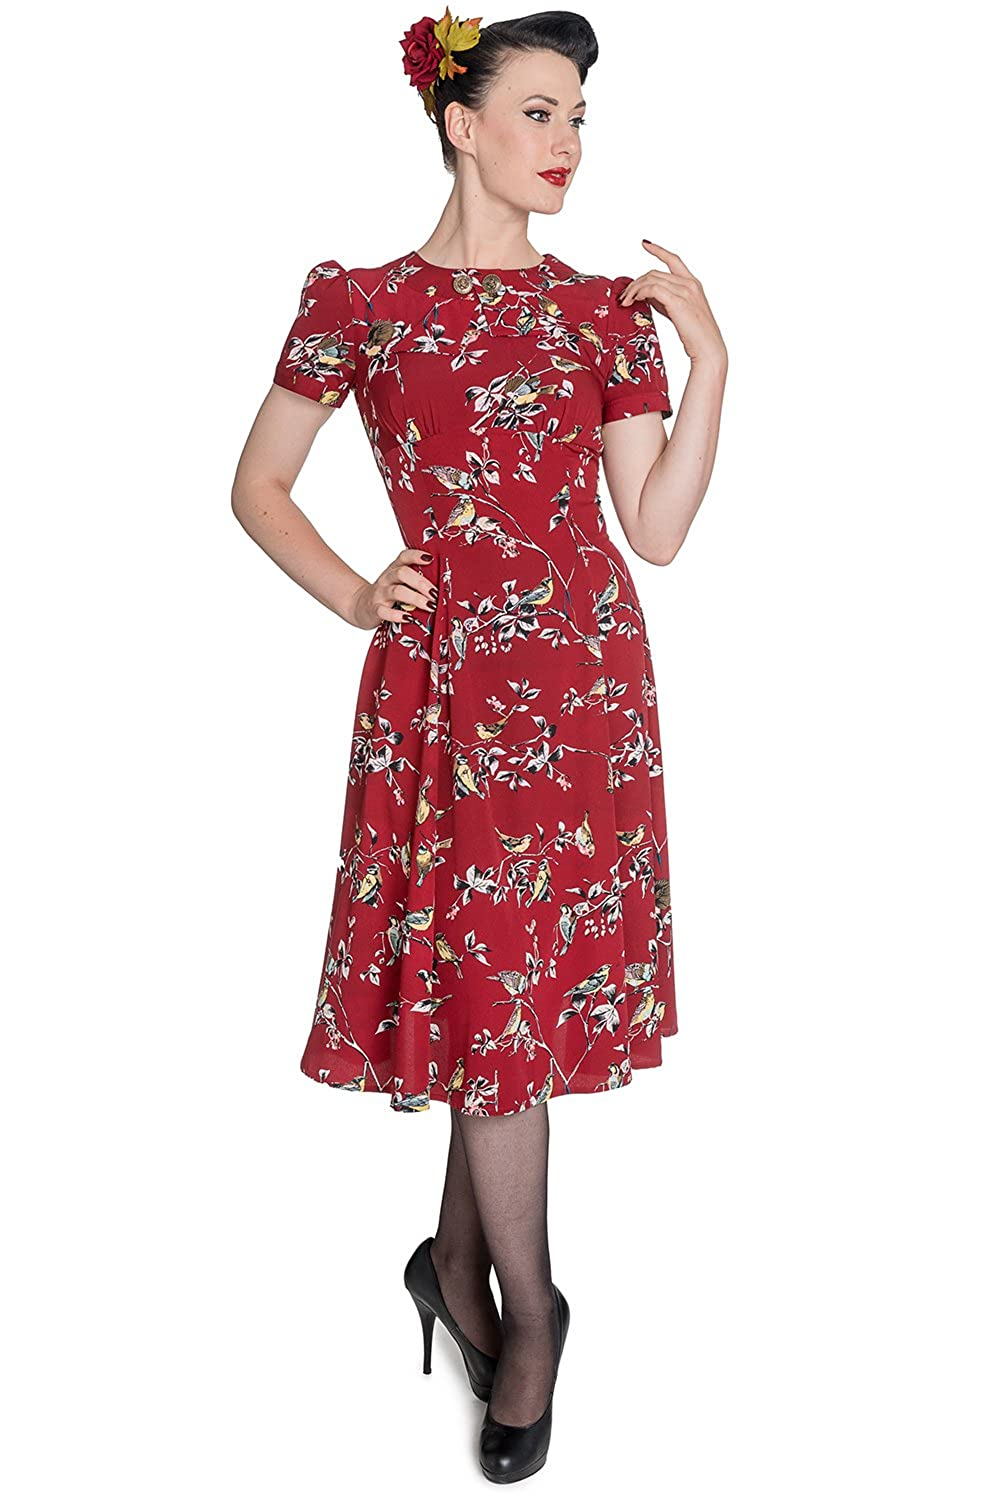 1940s Plus Size Dresses | Swing Dress, Tea Dress Hell Bunny New Birdy Vintage Landgirl 40s Dress $39.99 AT vintagedancer.com